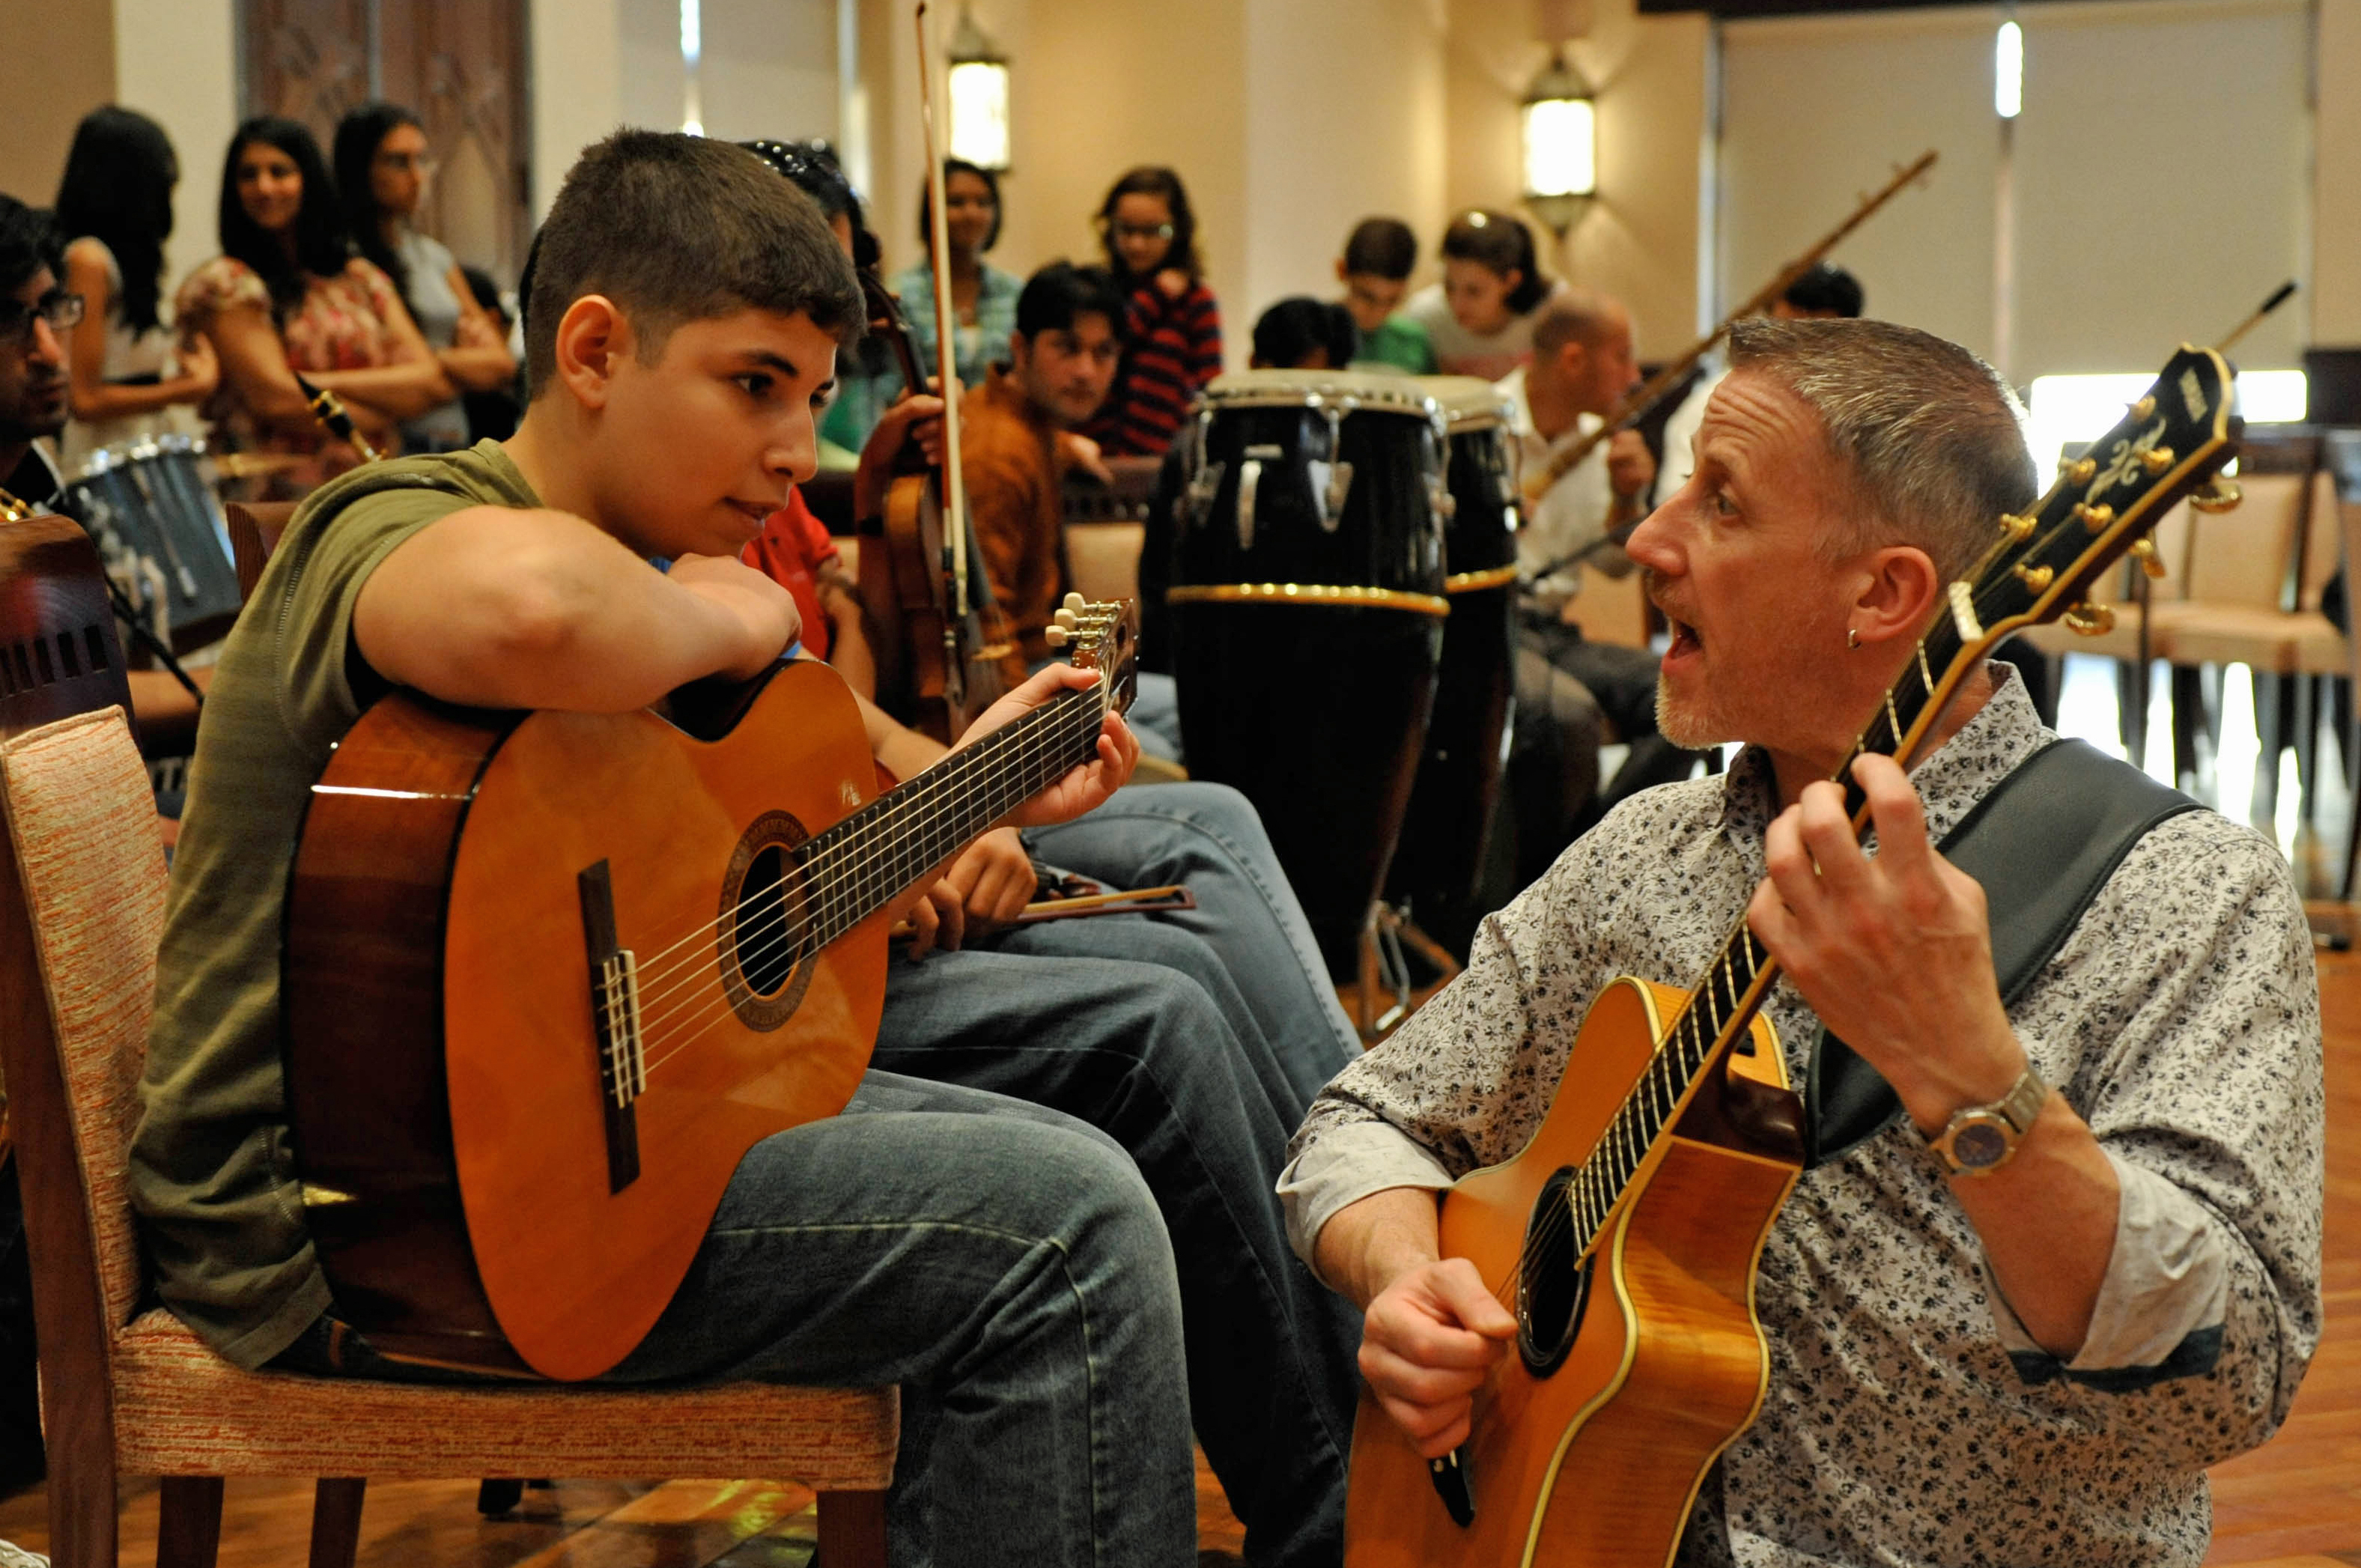 During rehearsal, Paul Griffiths works with a Syrian musician from the UAE Jamat.  . Photo: Naveed Osman